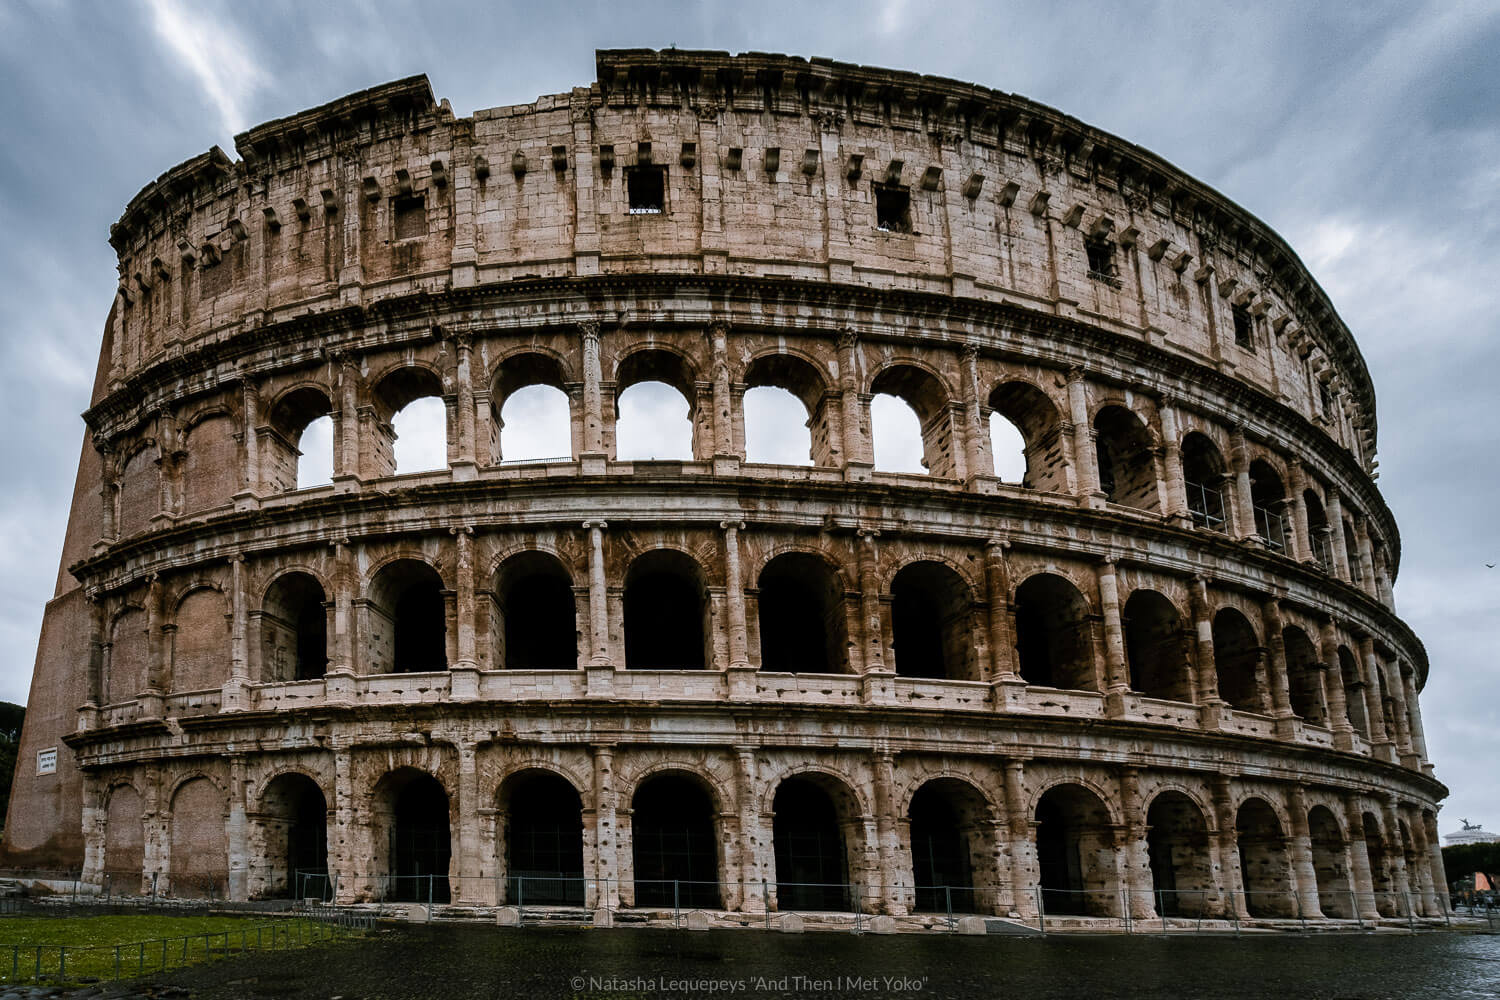 """The Colosseum in Rome, Italy. Travel photography and guide by © Natasha Lequepeys for """"And Then I Met Yoko"""". #rome #italy #travelblog #travelphotography"""